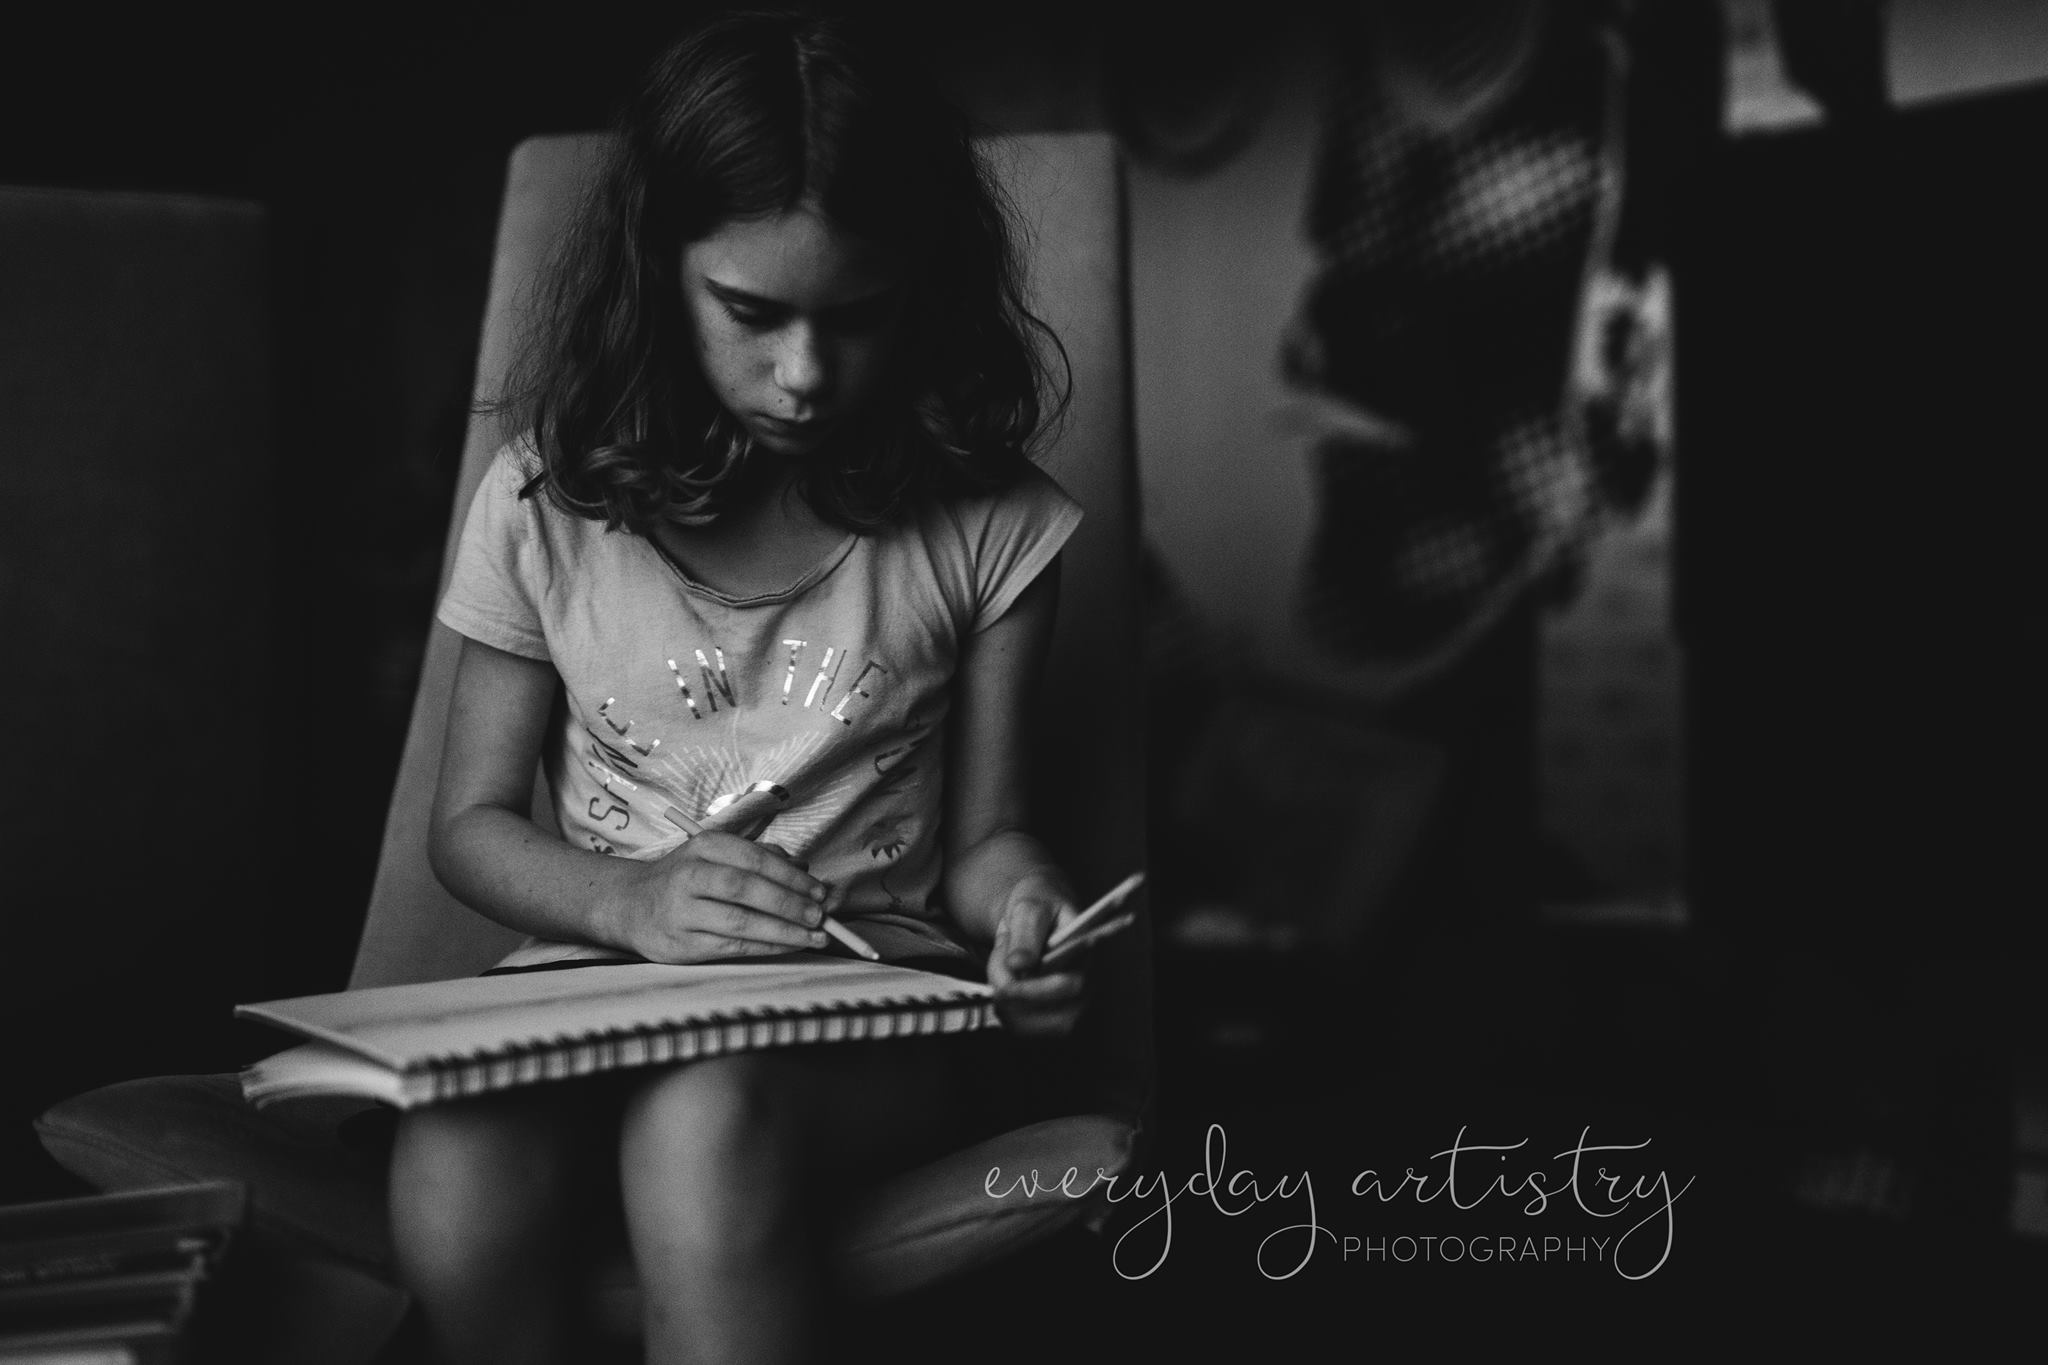 black and white child going beyond the pose everyday artistry photography